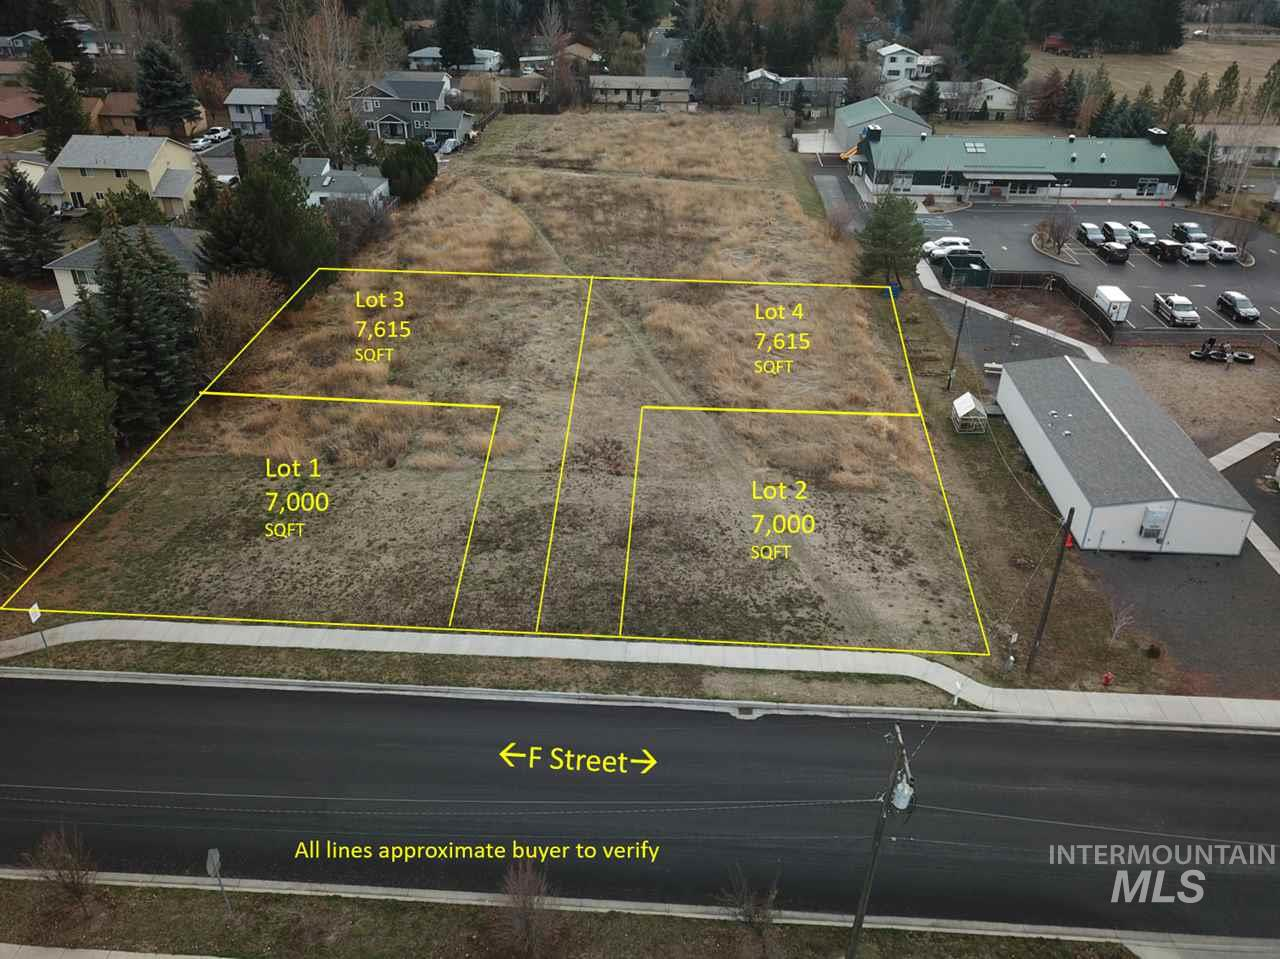 000 F Street Parcel #4 Property Photo - Moscow, ID real estate listing